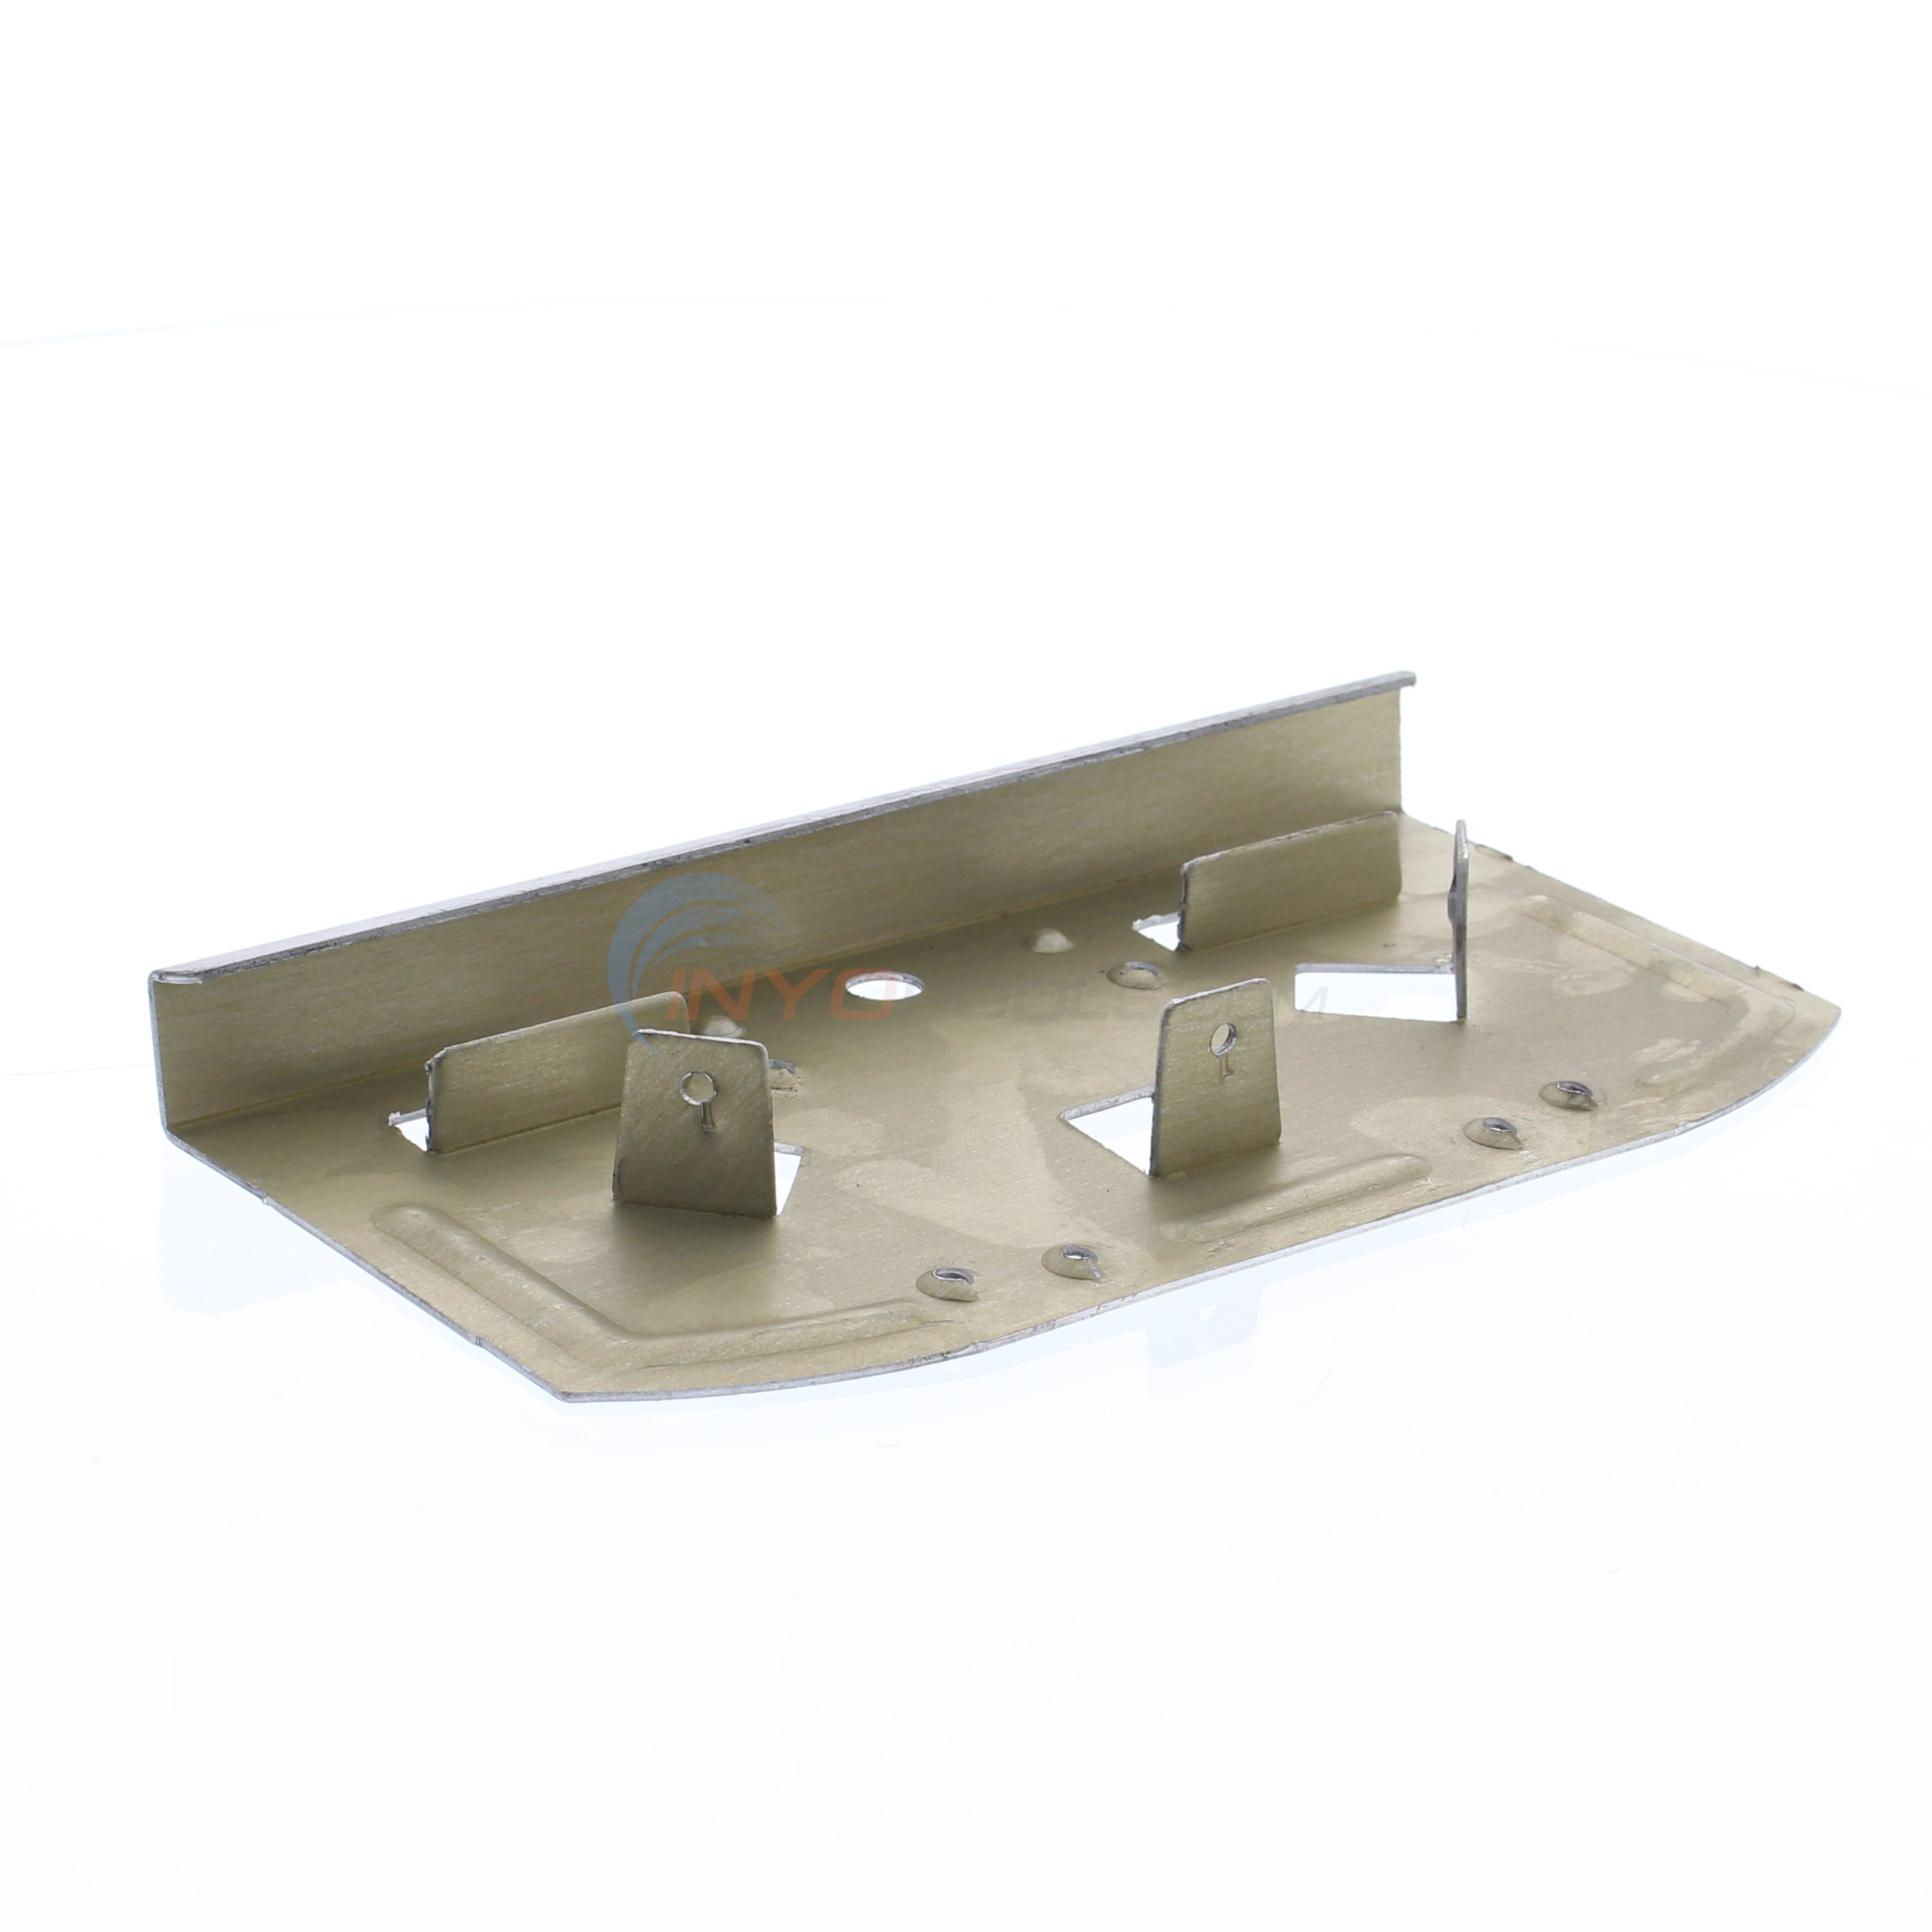 "Aluminum Bottom Plate 6-1/4"" (Single)"